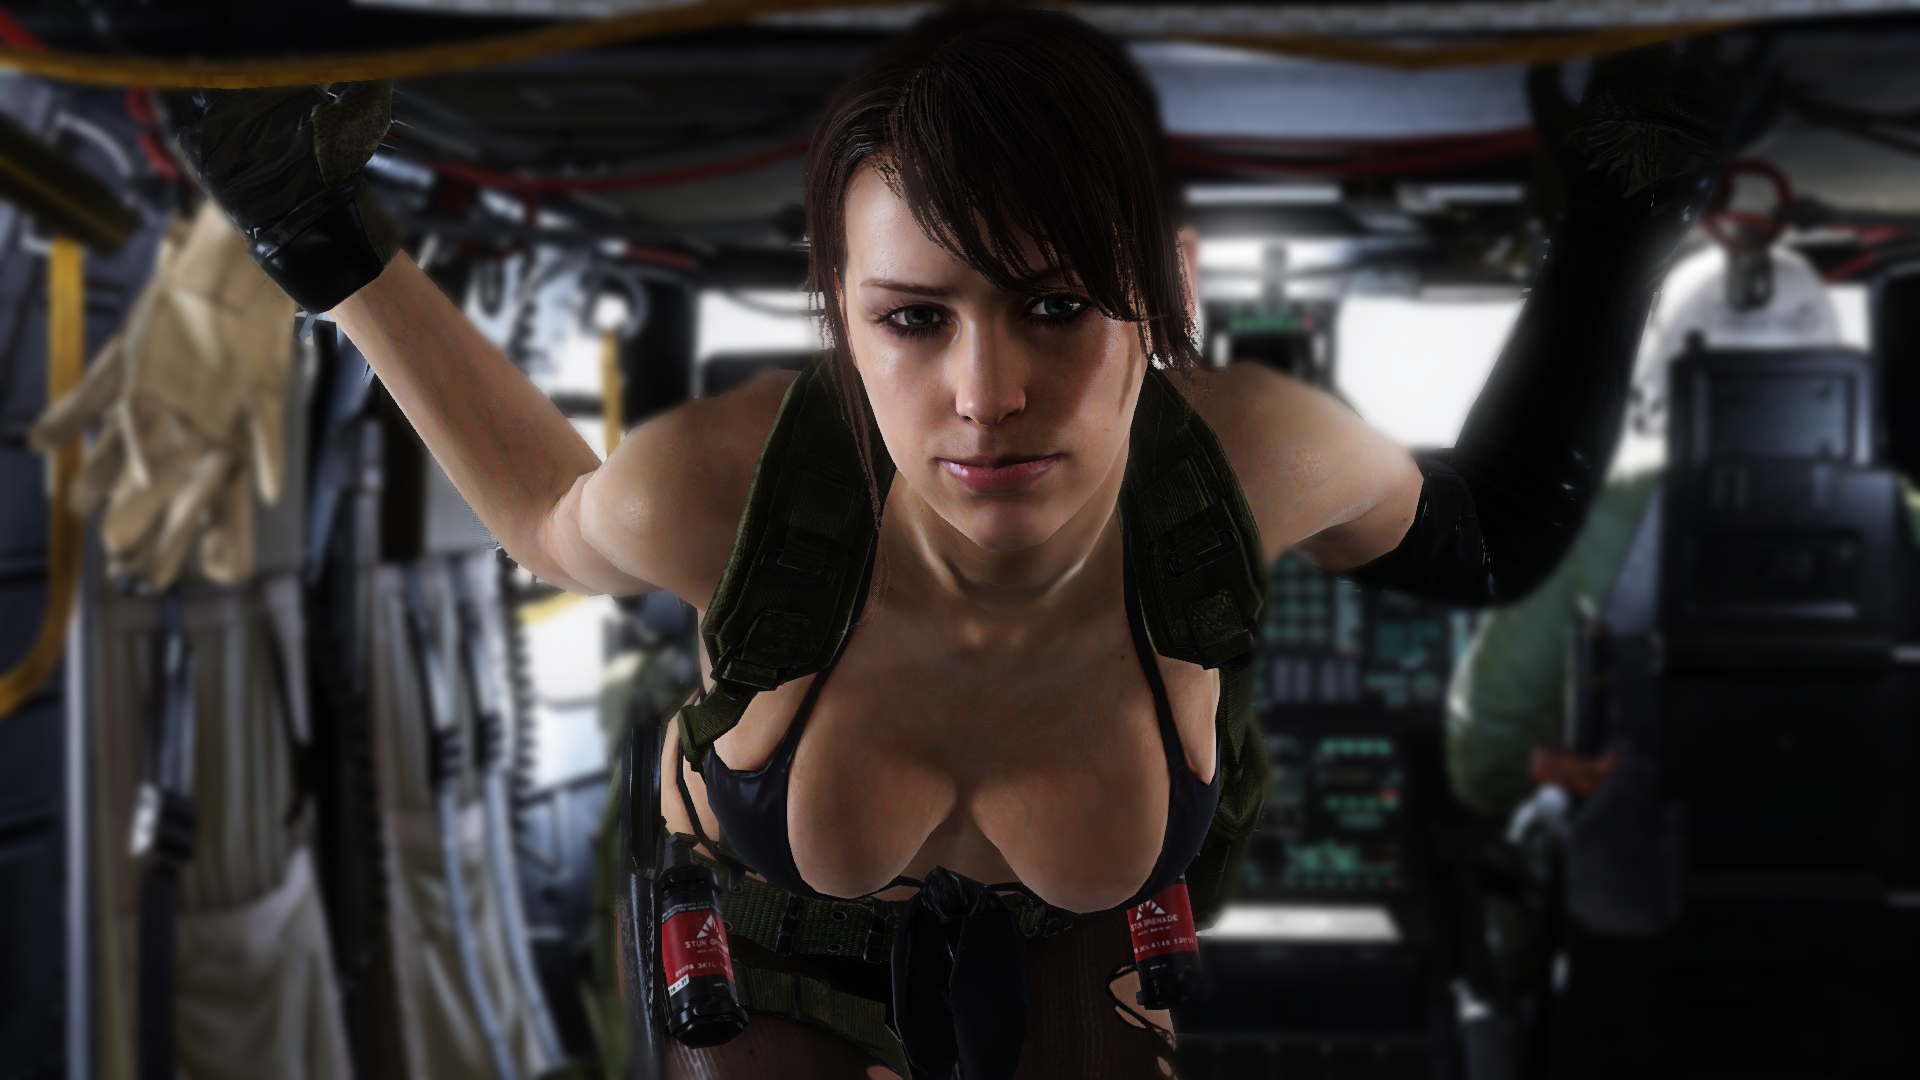 quiet___the_silent_sniper___metal_gear_solid_v_by_billym12345-d990af3.png - Metal Gear Solid 5: The Phantom Pain Quiet